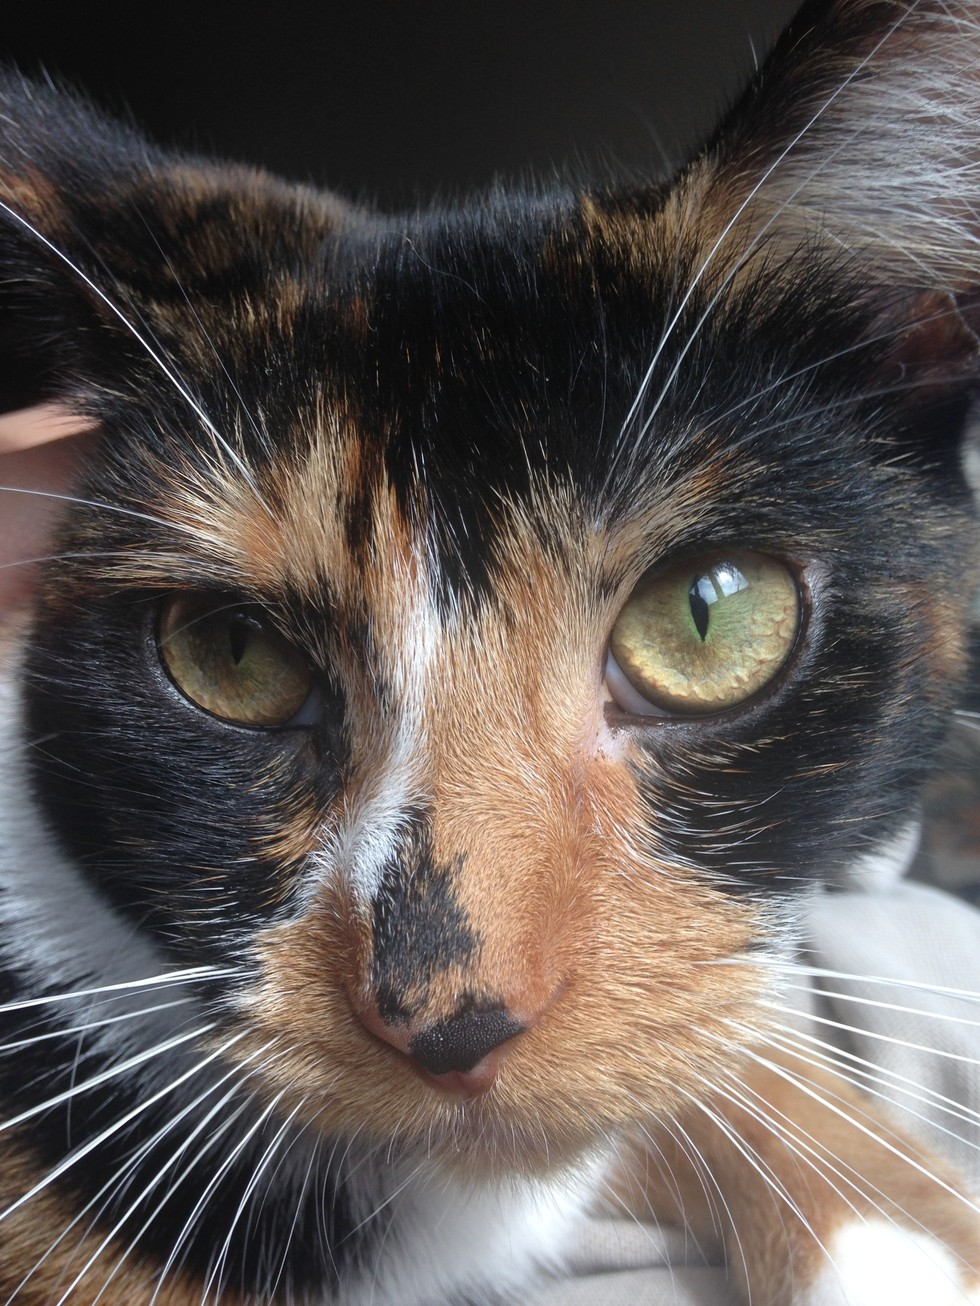 X-Chromosome Causes Calico Coloring In Cats